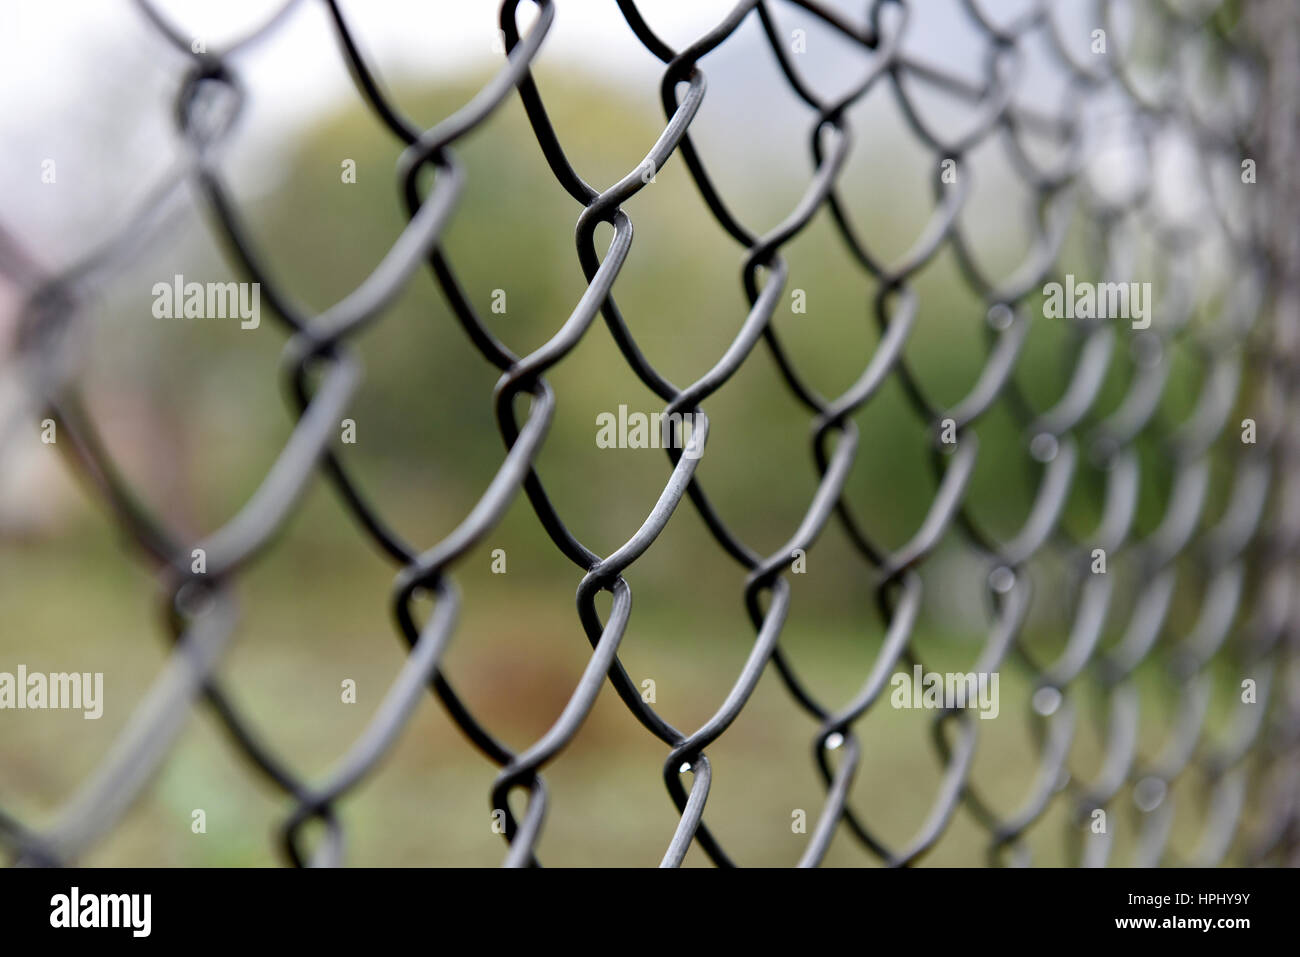 Detail of twisted wire fence. Shallow depth of field Stock Photo ...